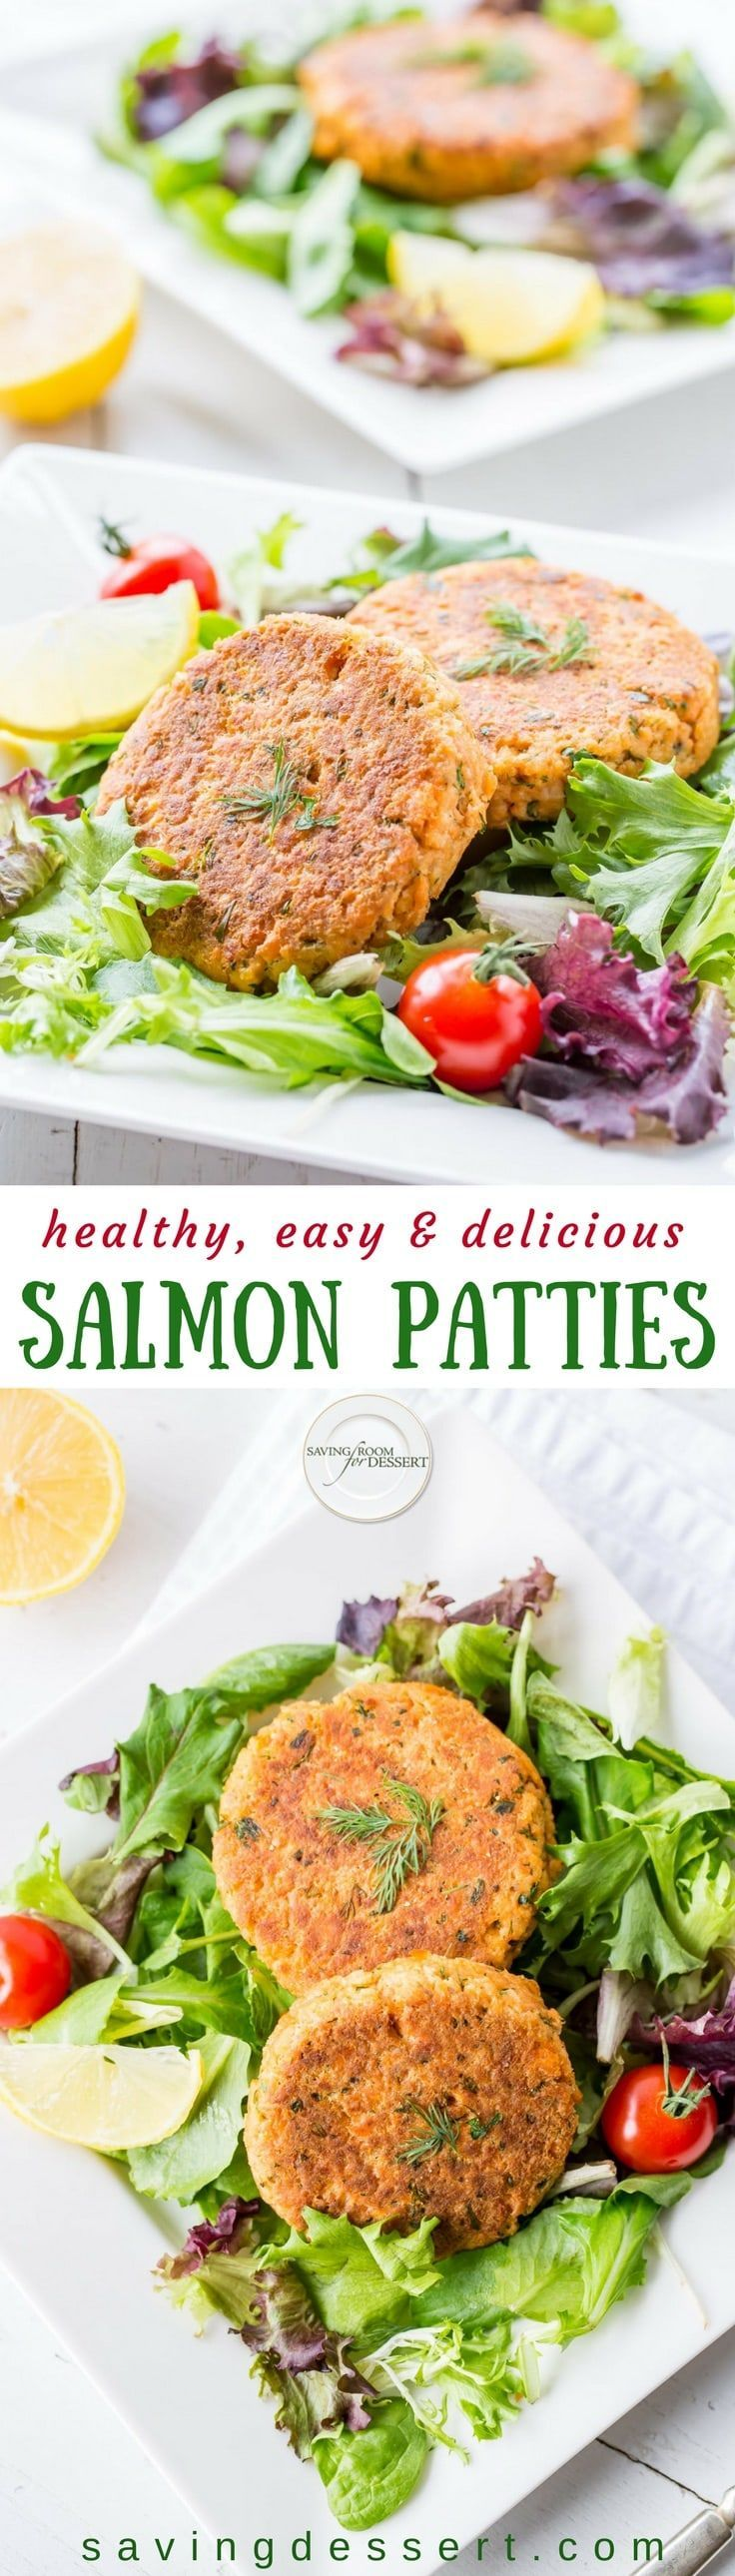 Easy, healthy and delicious, Salmon Patties are a terrific anytime meal loaded with flavor, plenty of protein and are perfect served with salad or as a burger style on a bun. www.savingdessert.com